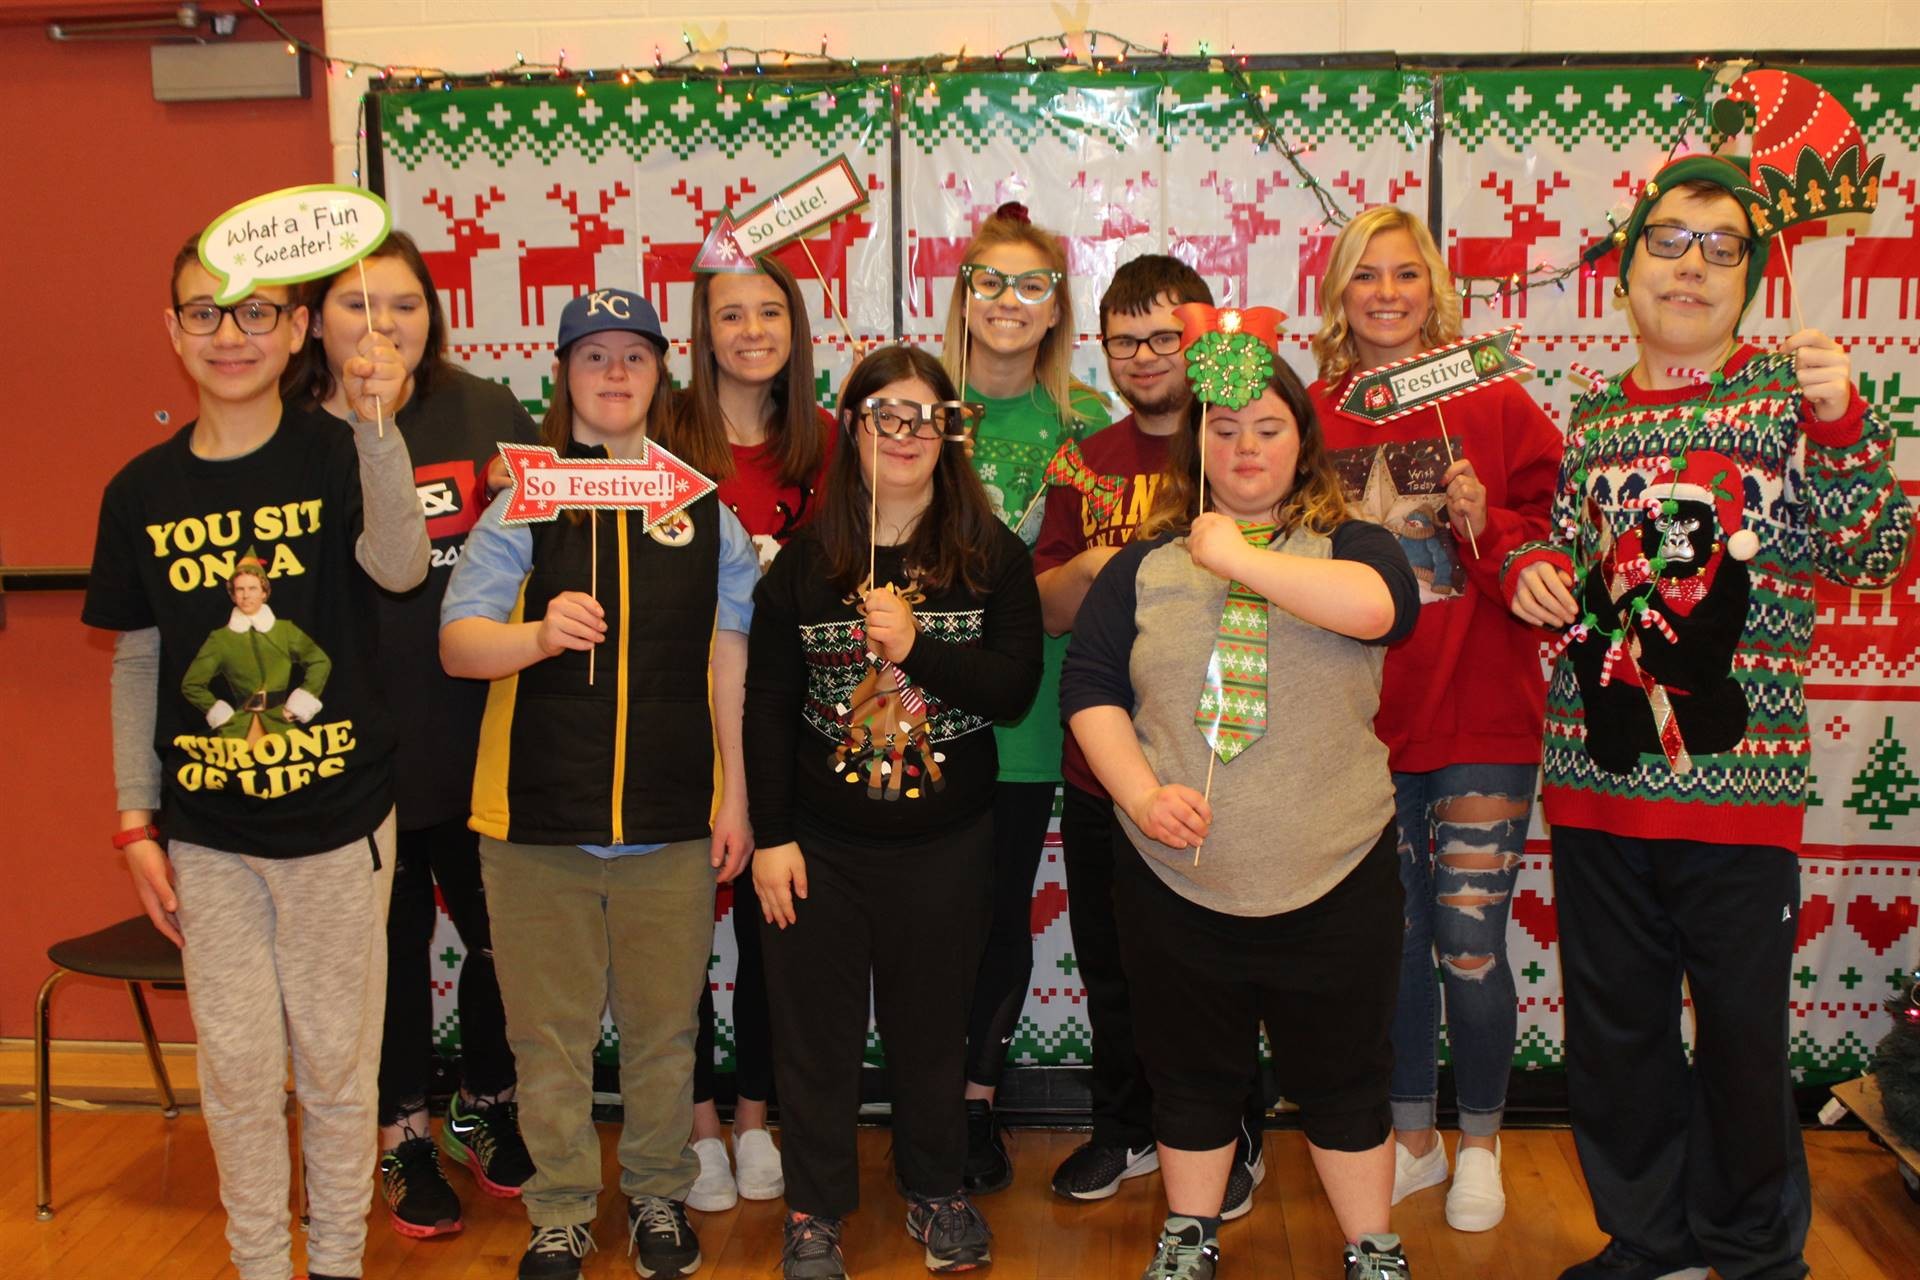 Students at the Holiday Sweater Party